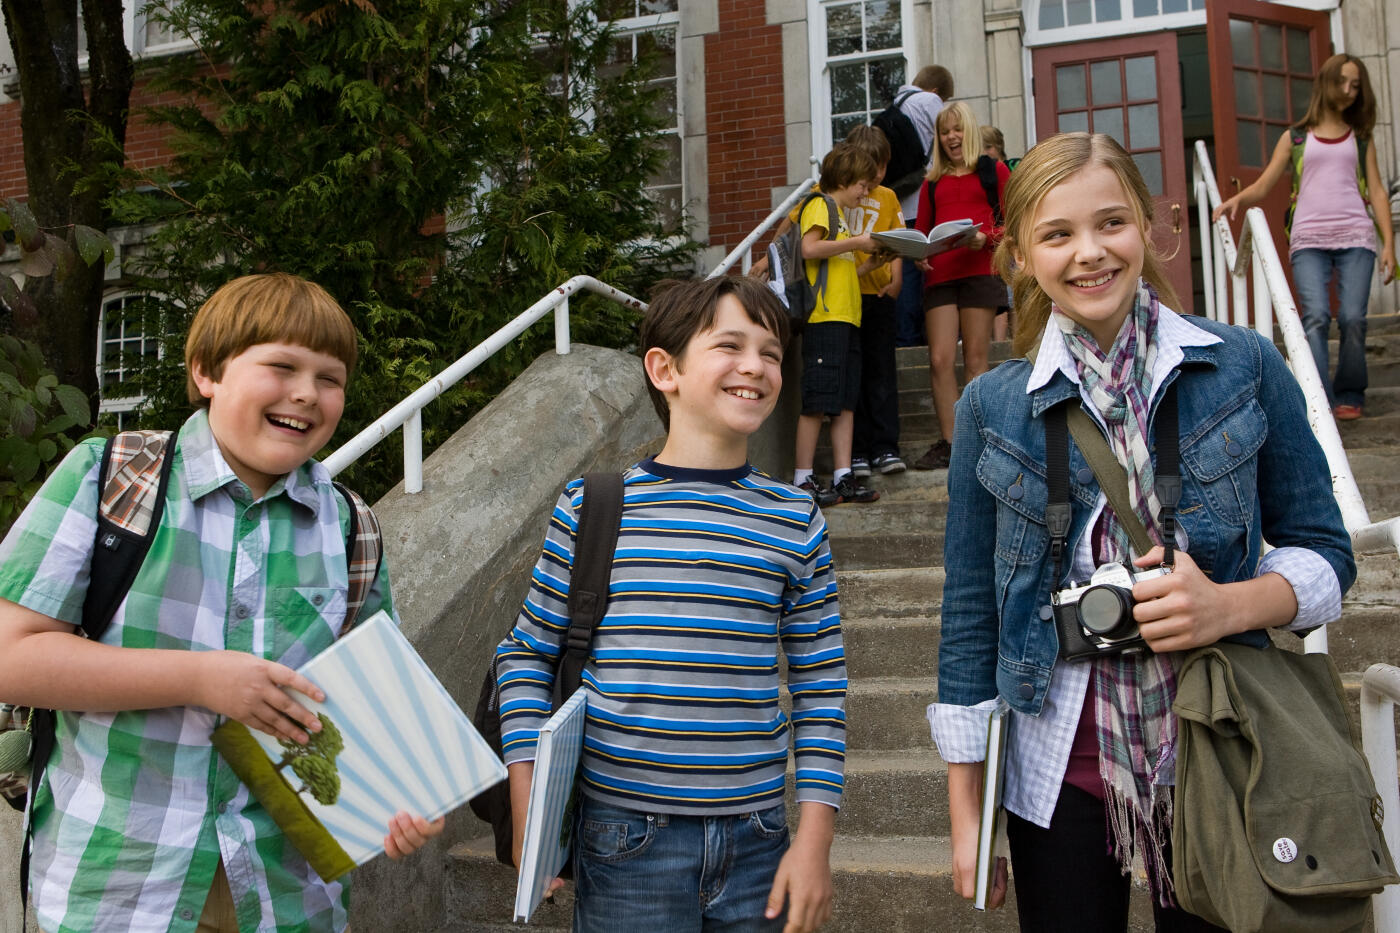 The Diary Of A Wimpy Kid Cast